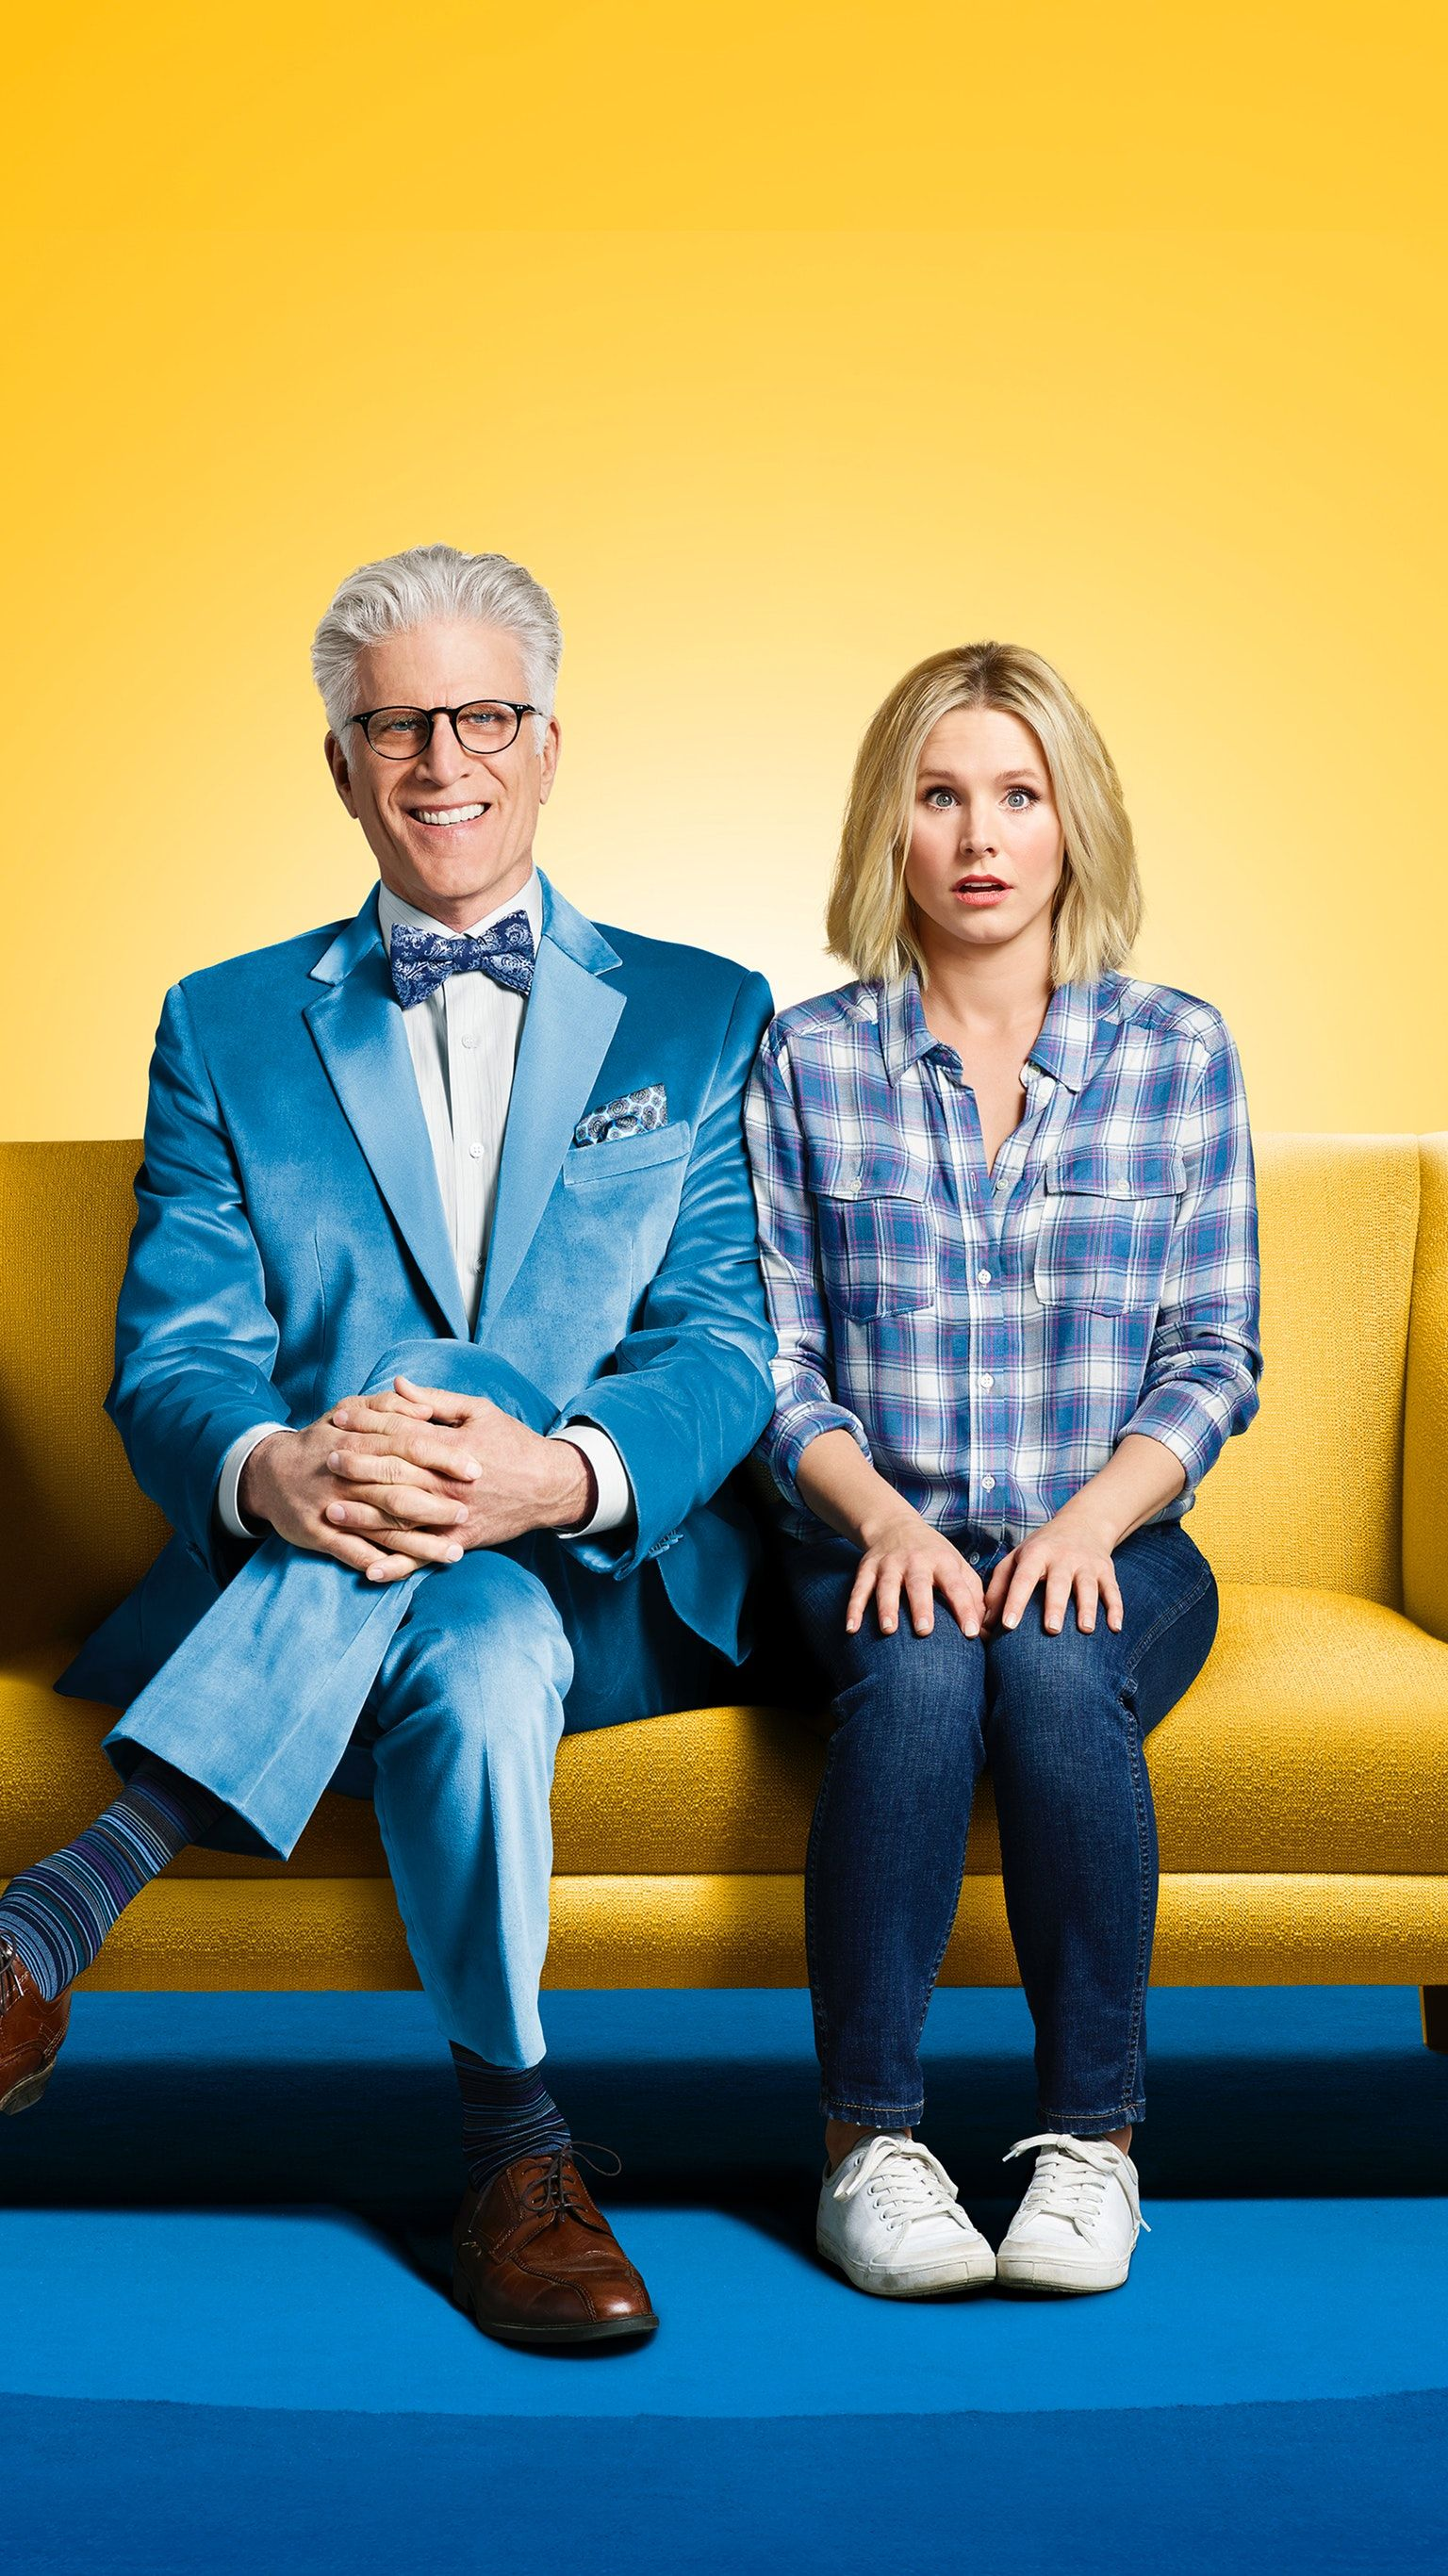 Things Wallpaper Phone Place Places The 2019 Good Place In Tv Shows